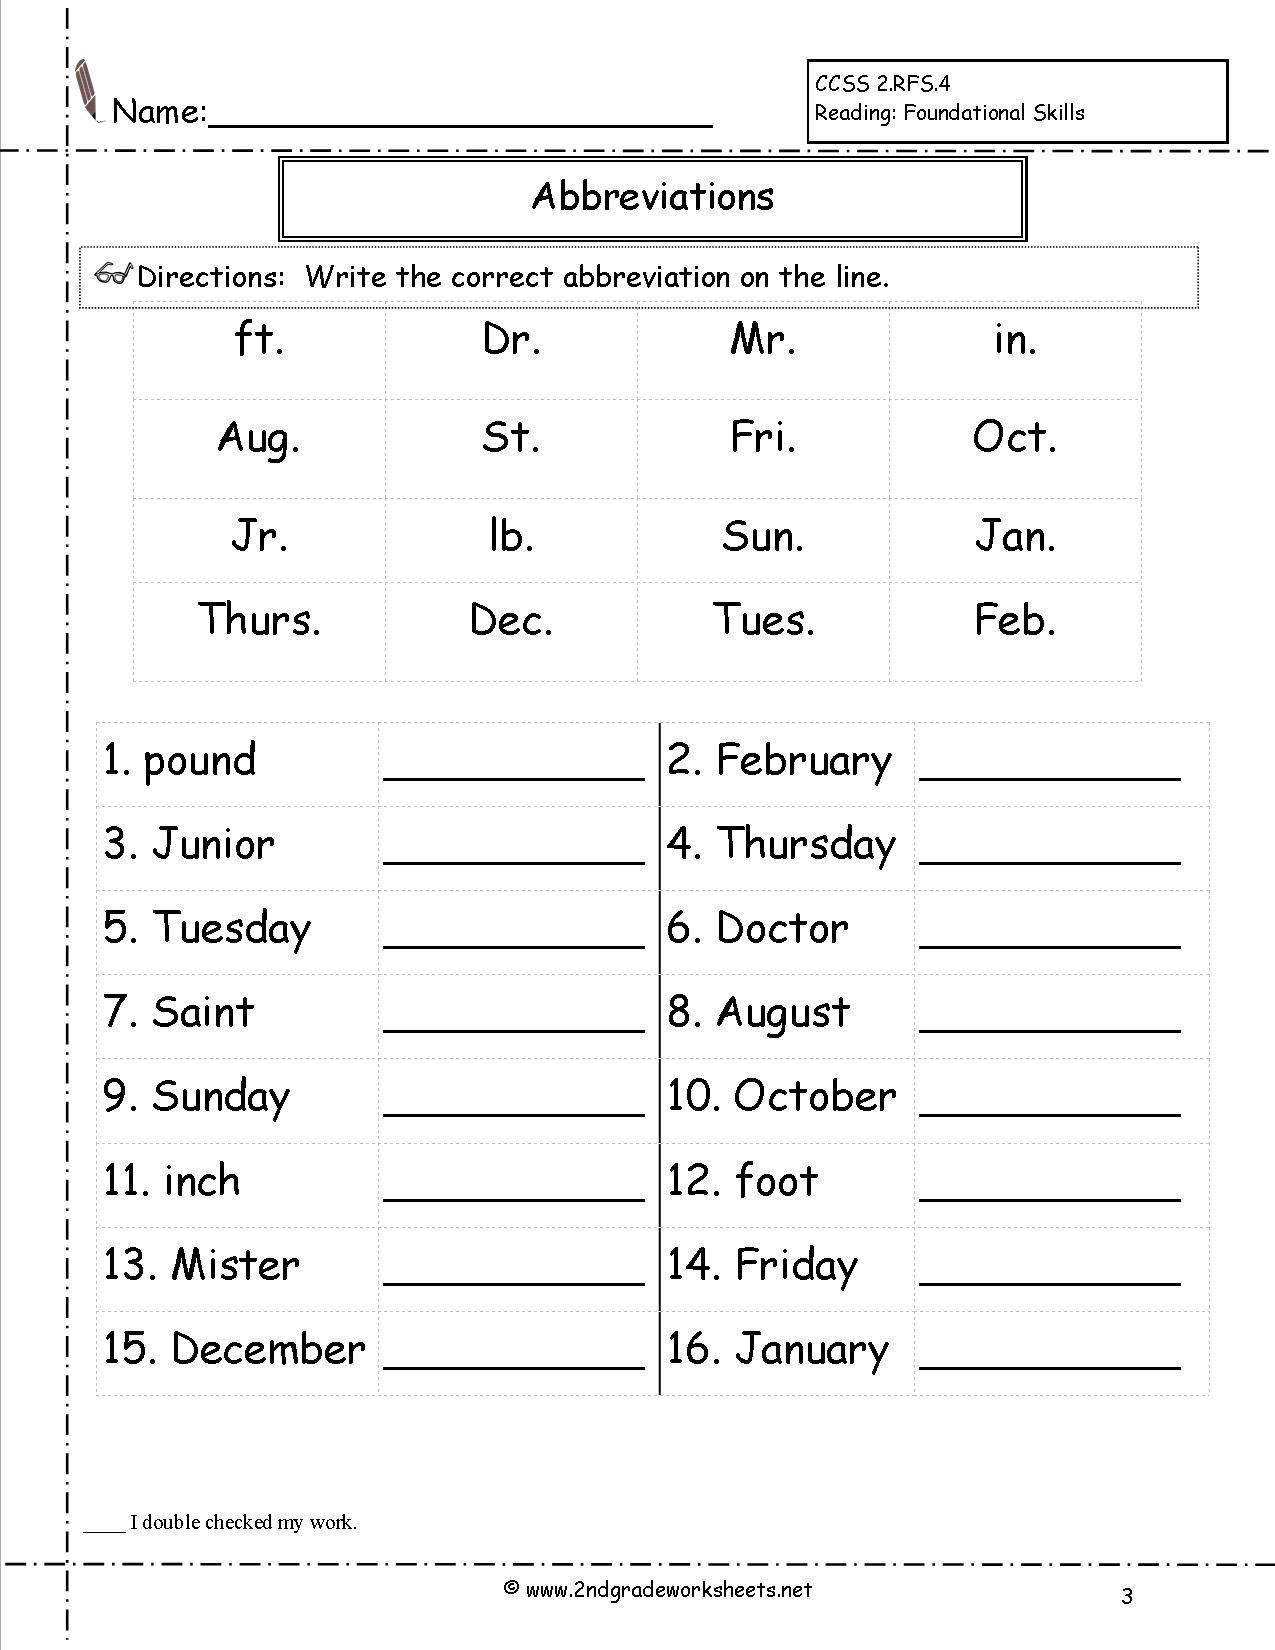 Abbreviations Worksheet With Images